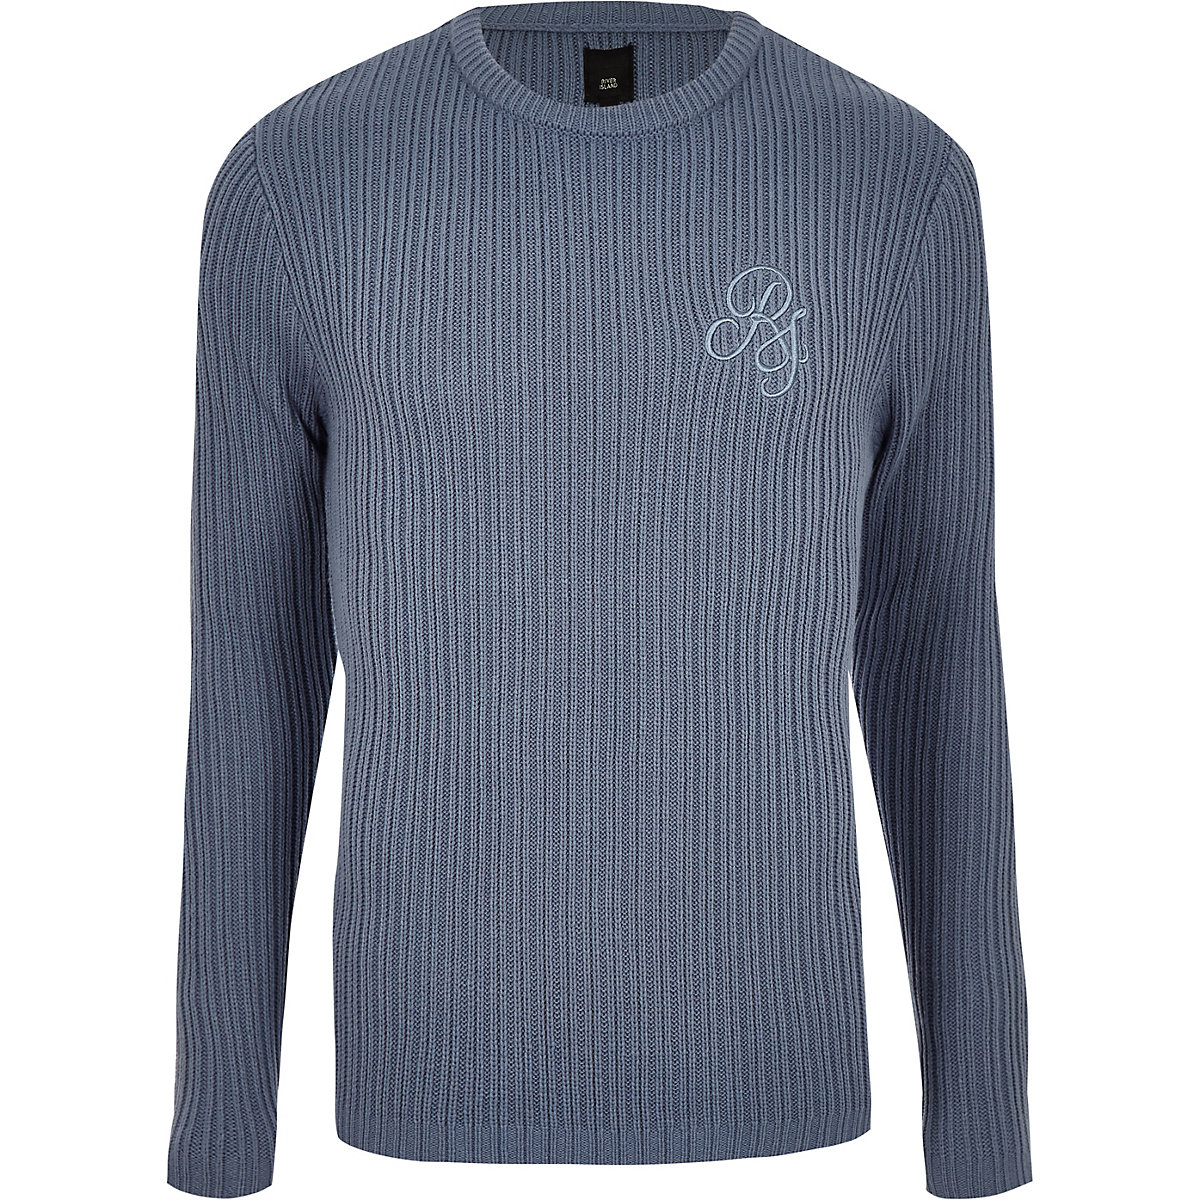 Light blue muscle fit rib crew neck sweater